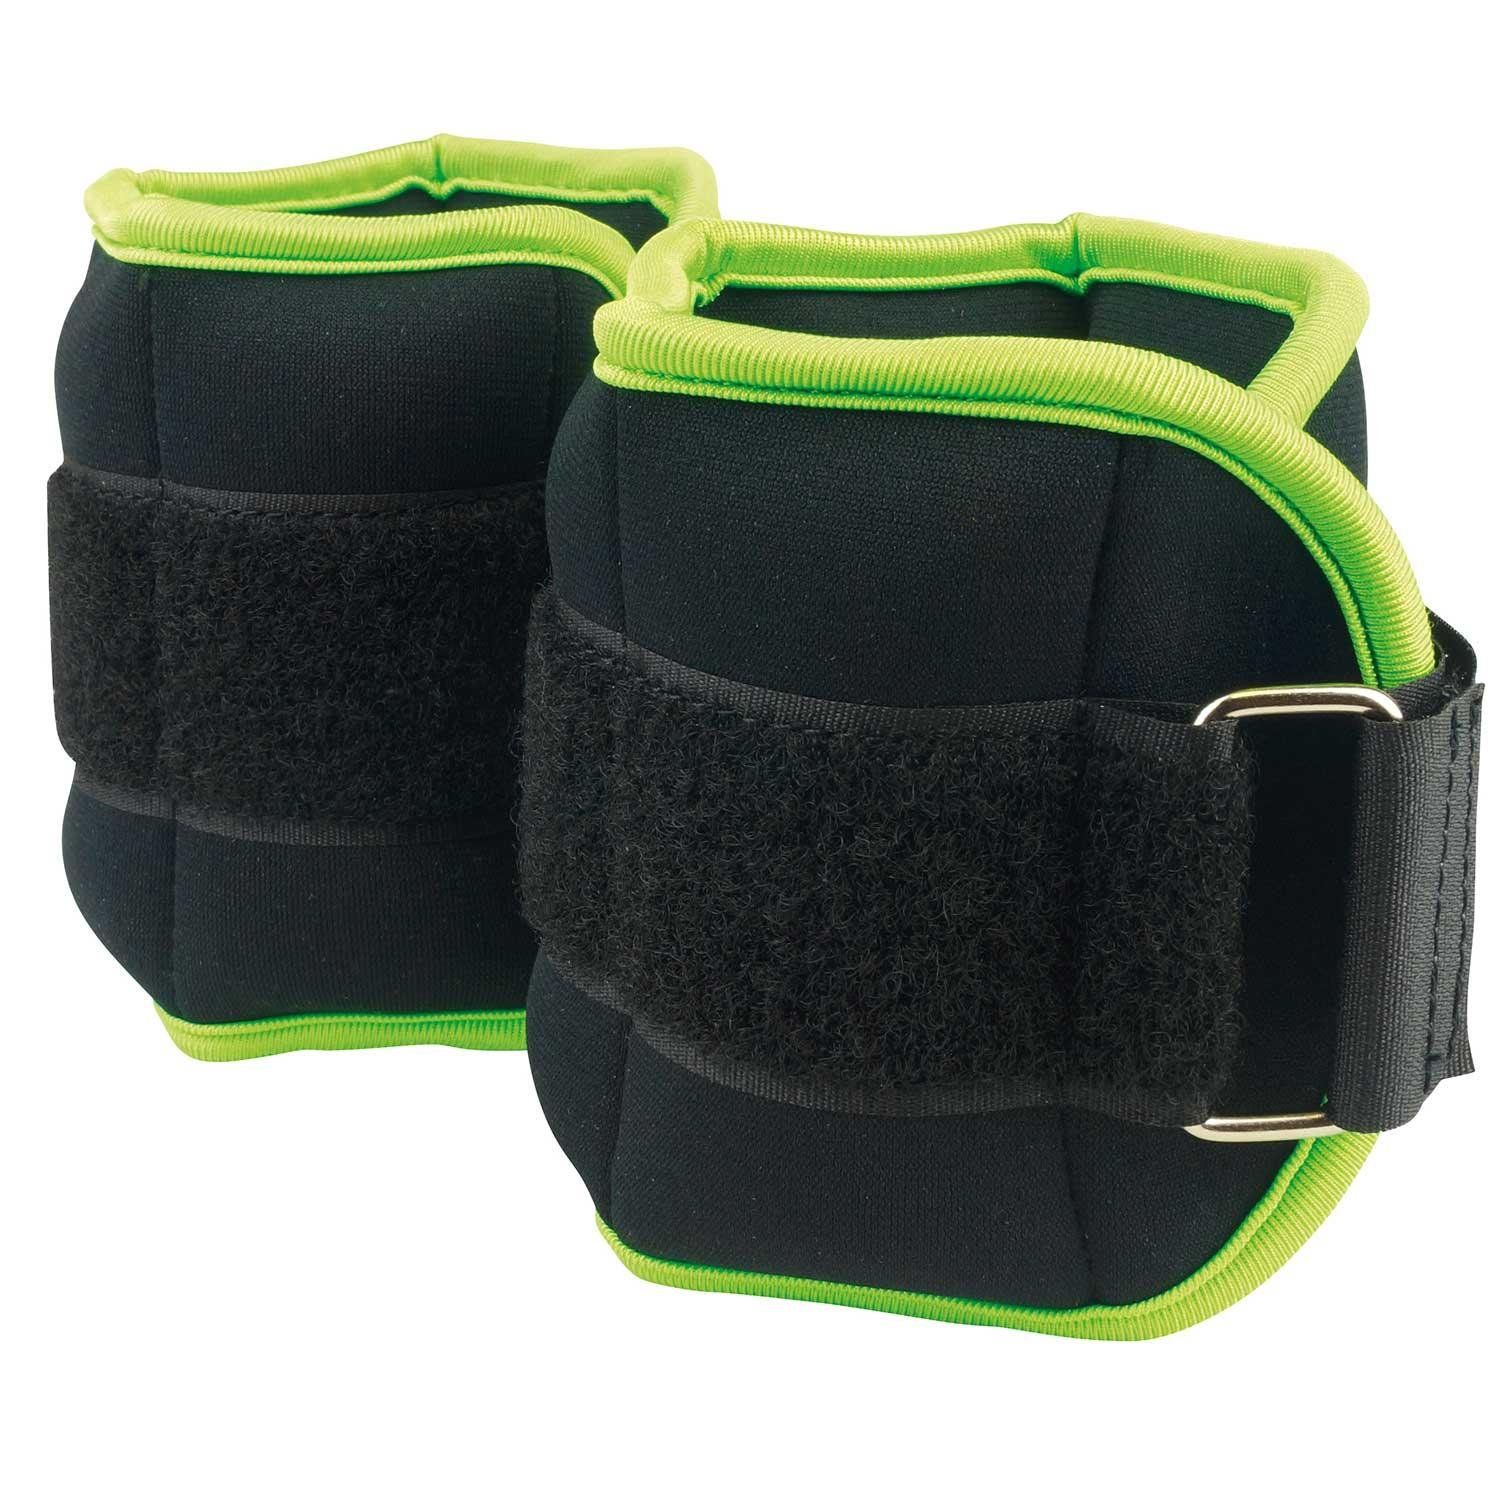 Urban Fitness Equipment Neoprene Covered Ankle Wrist Weights 0.5kg And 1kg